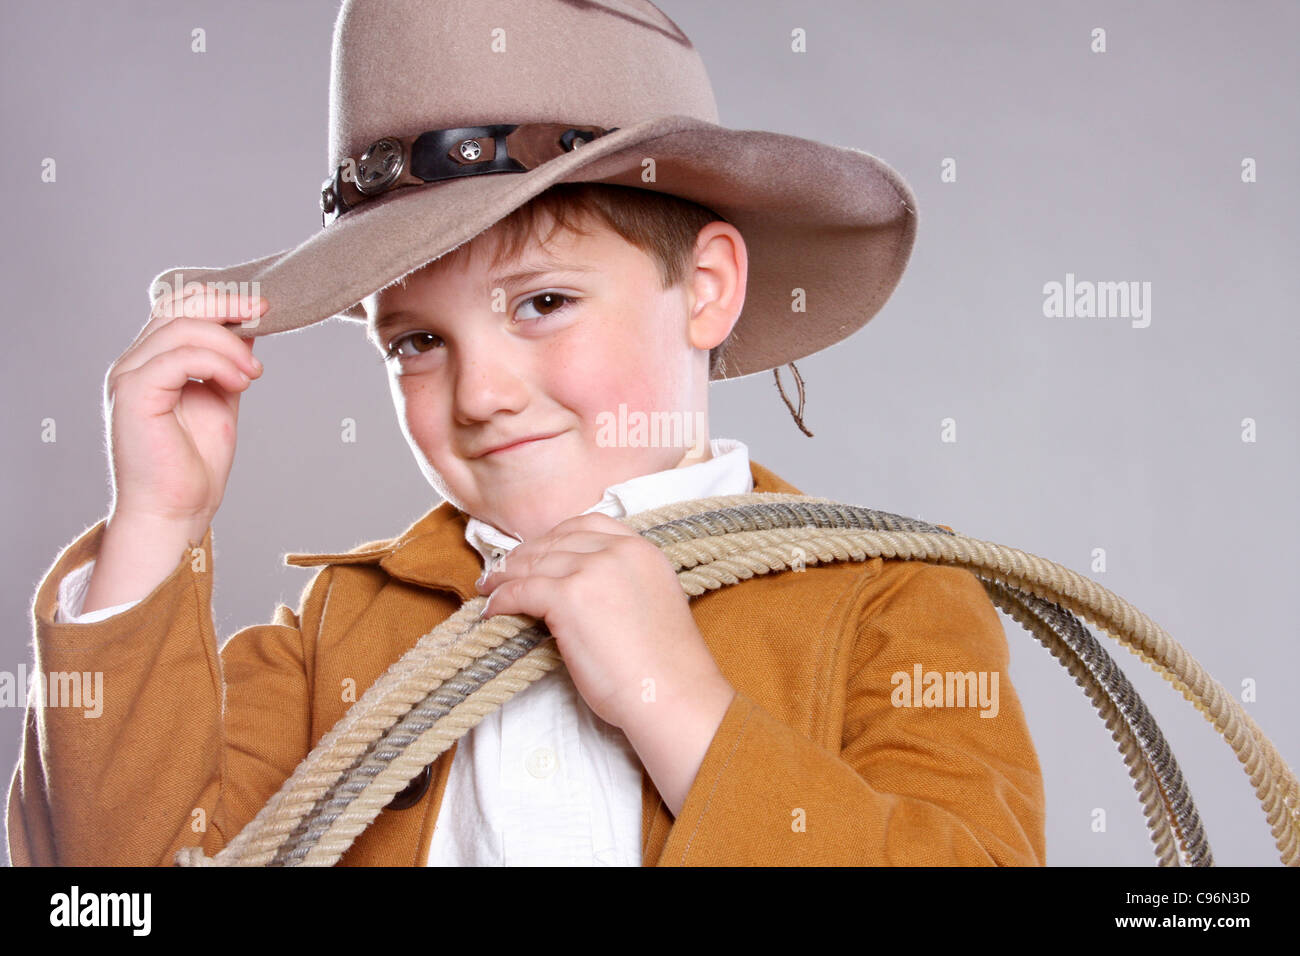 A cute cowboy greeting with a hat nod Stock Photo  40100913 - Alamy 69693f4bfd7d